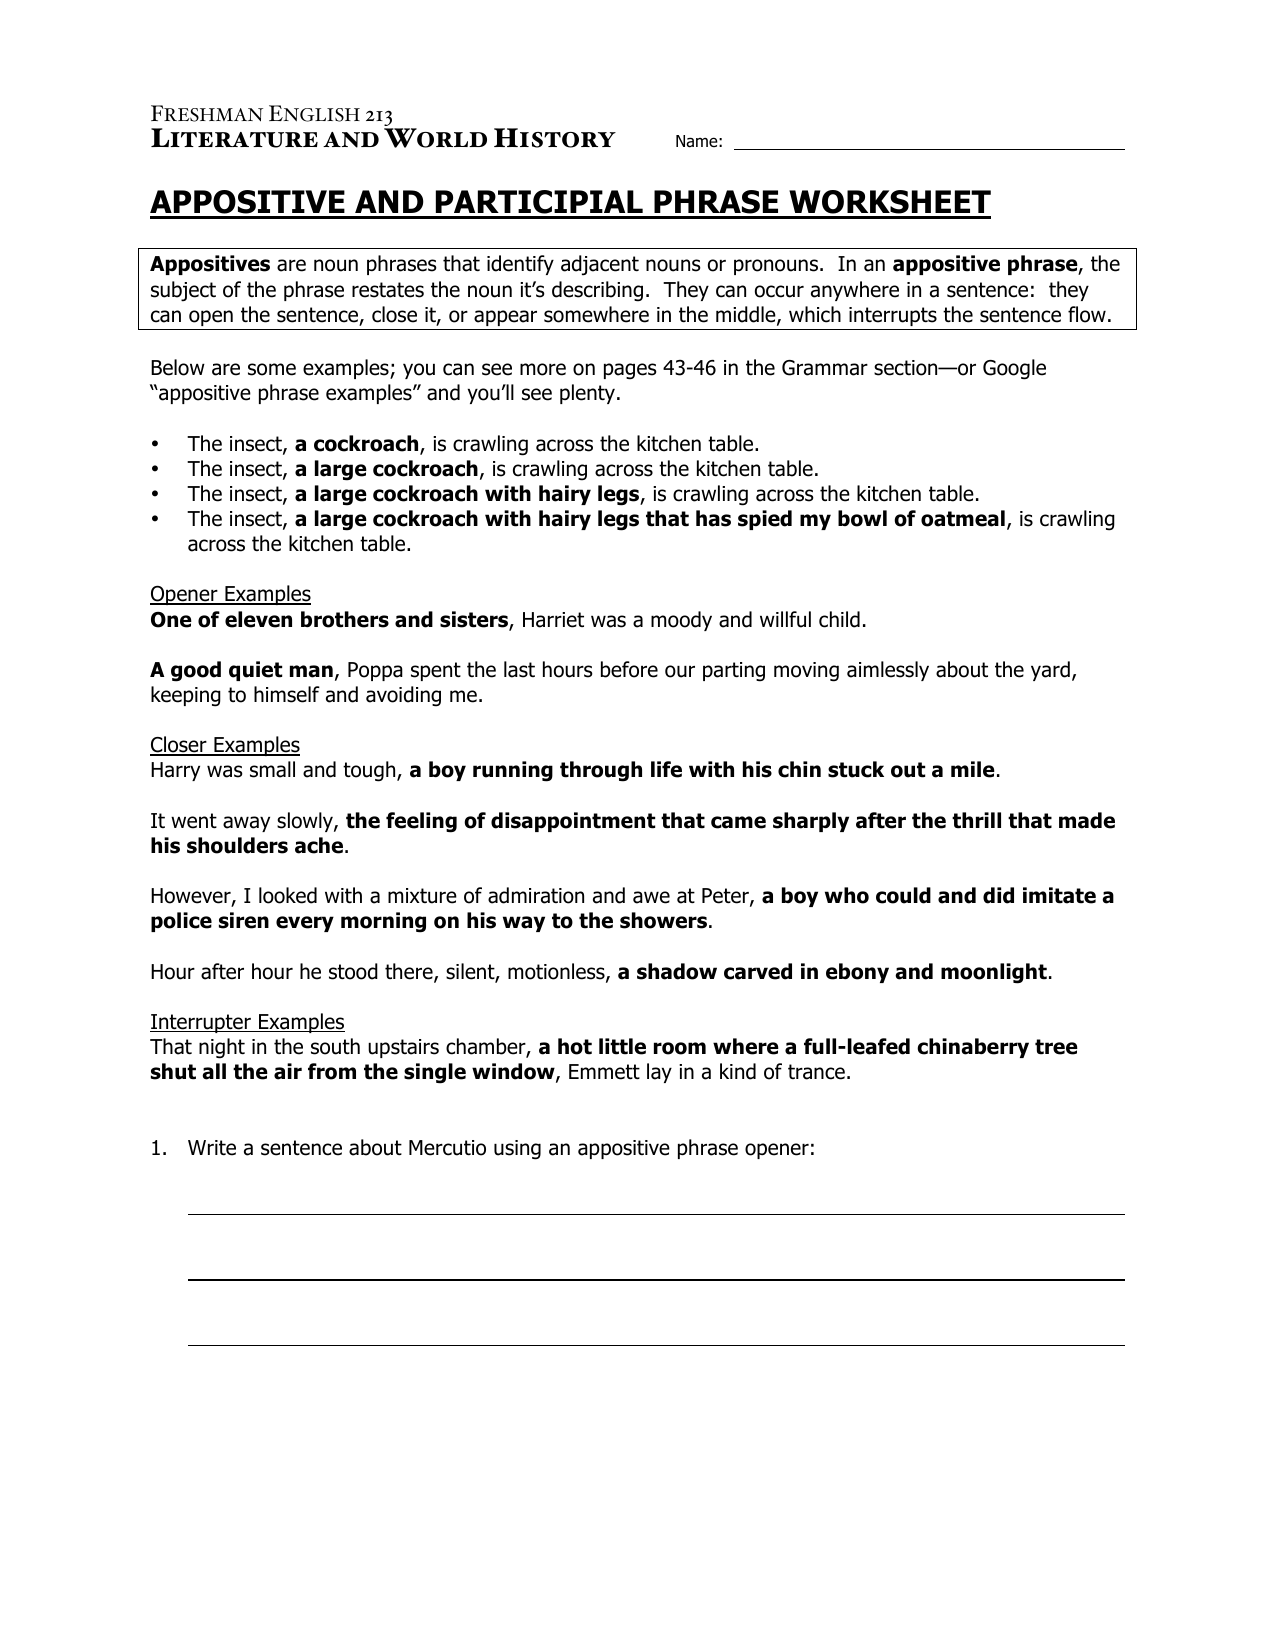 Worksheets Appositives Worksheet 013106657 1 af9bbe5de8f19380e6176e965b61f0b1 png